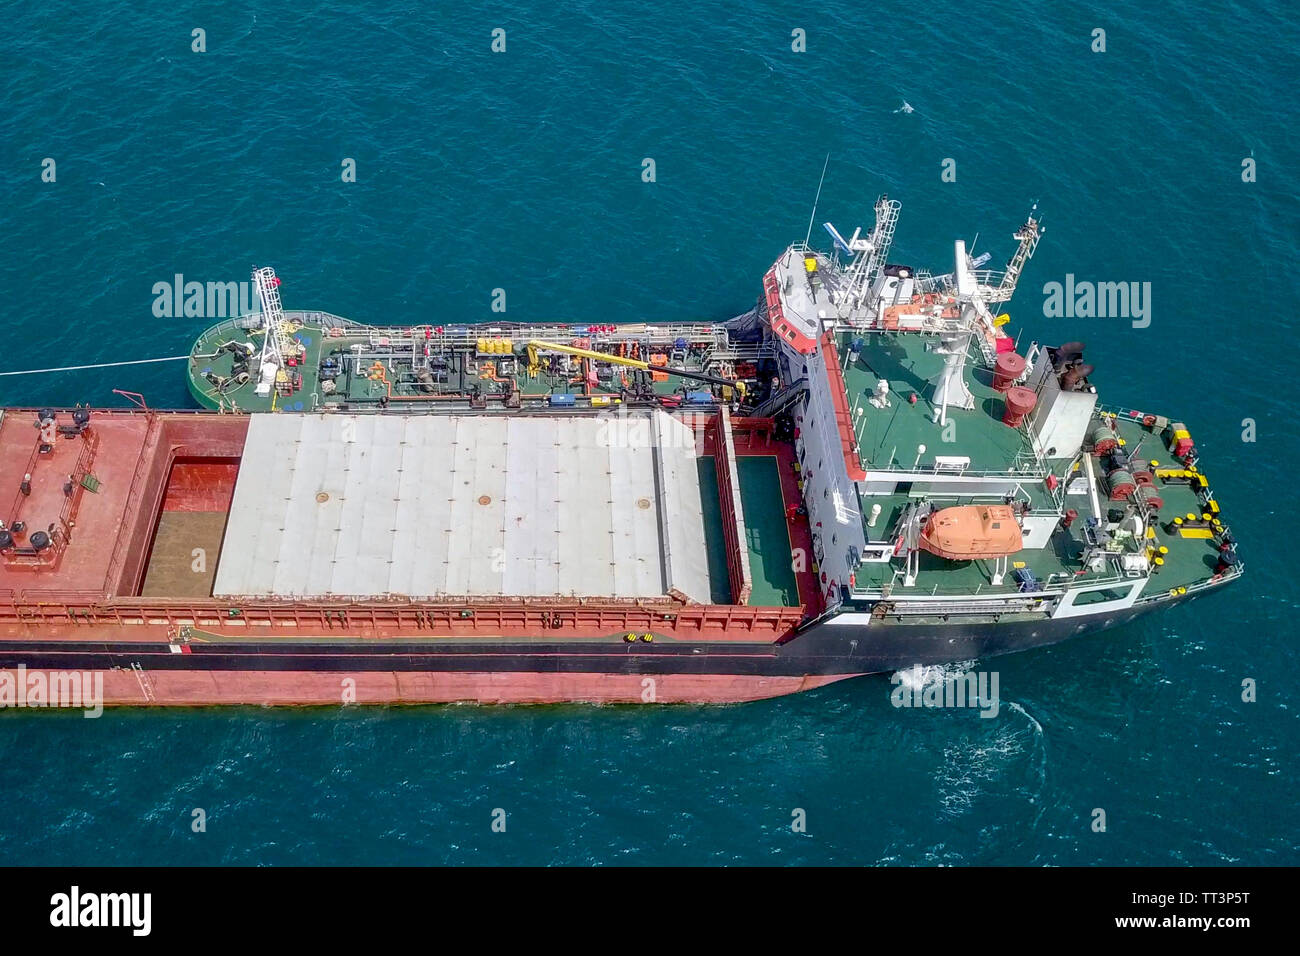 Refuelling at sea - Small Oil products ship fuelling a large Bulk carrier, aerial image. Stock Photo